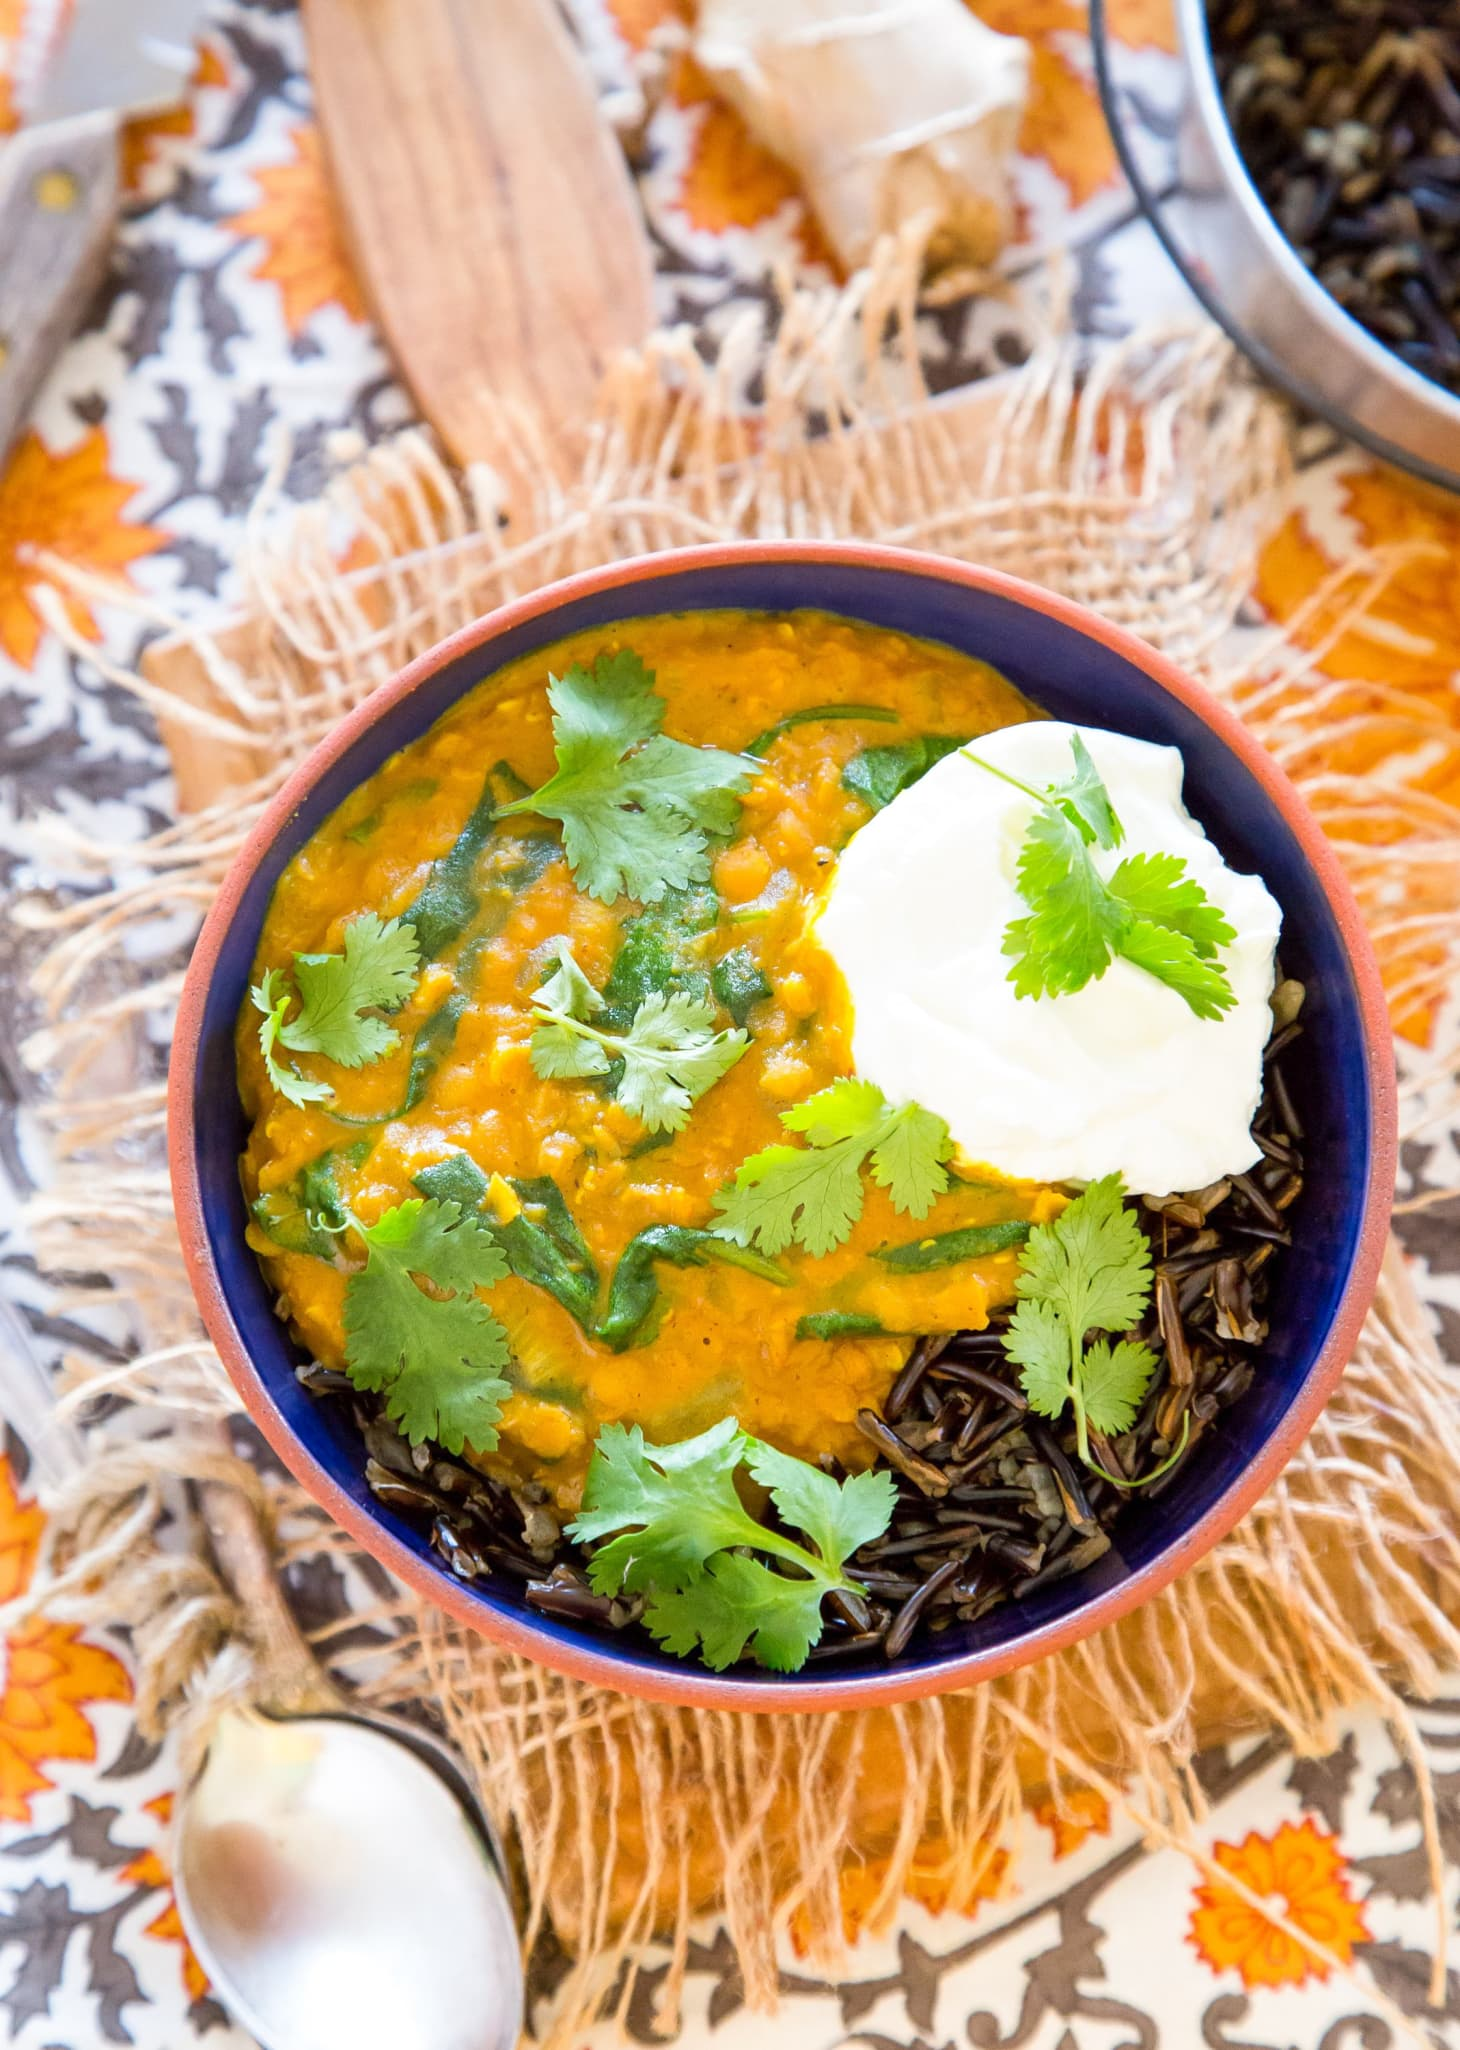 23 Vegetarian Dinners to Make Meatless Monday Even Easier | Kitchn